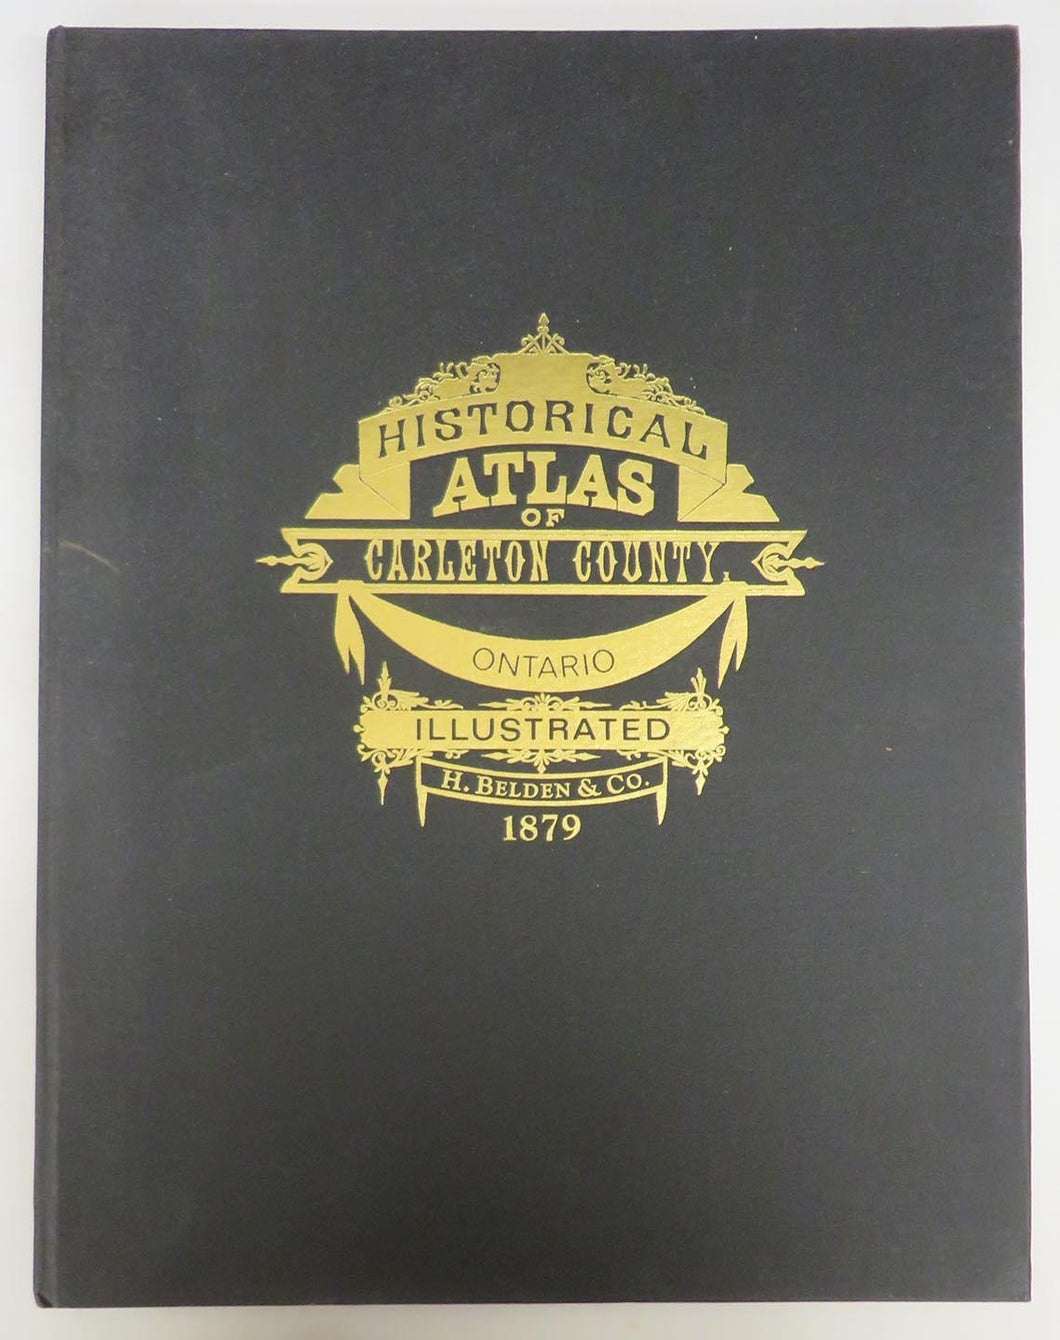 Illustrated Historical Atlas of County of Carleton including City of Ottawa